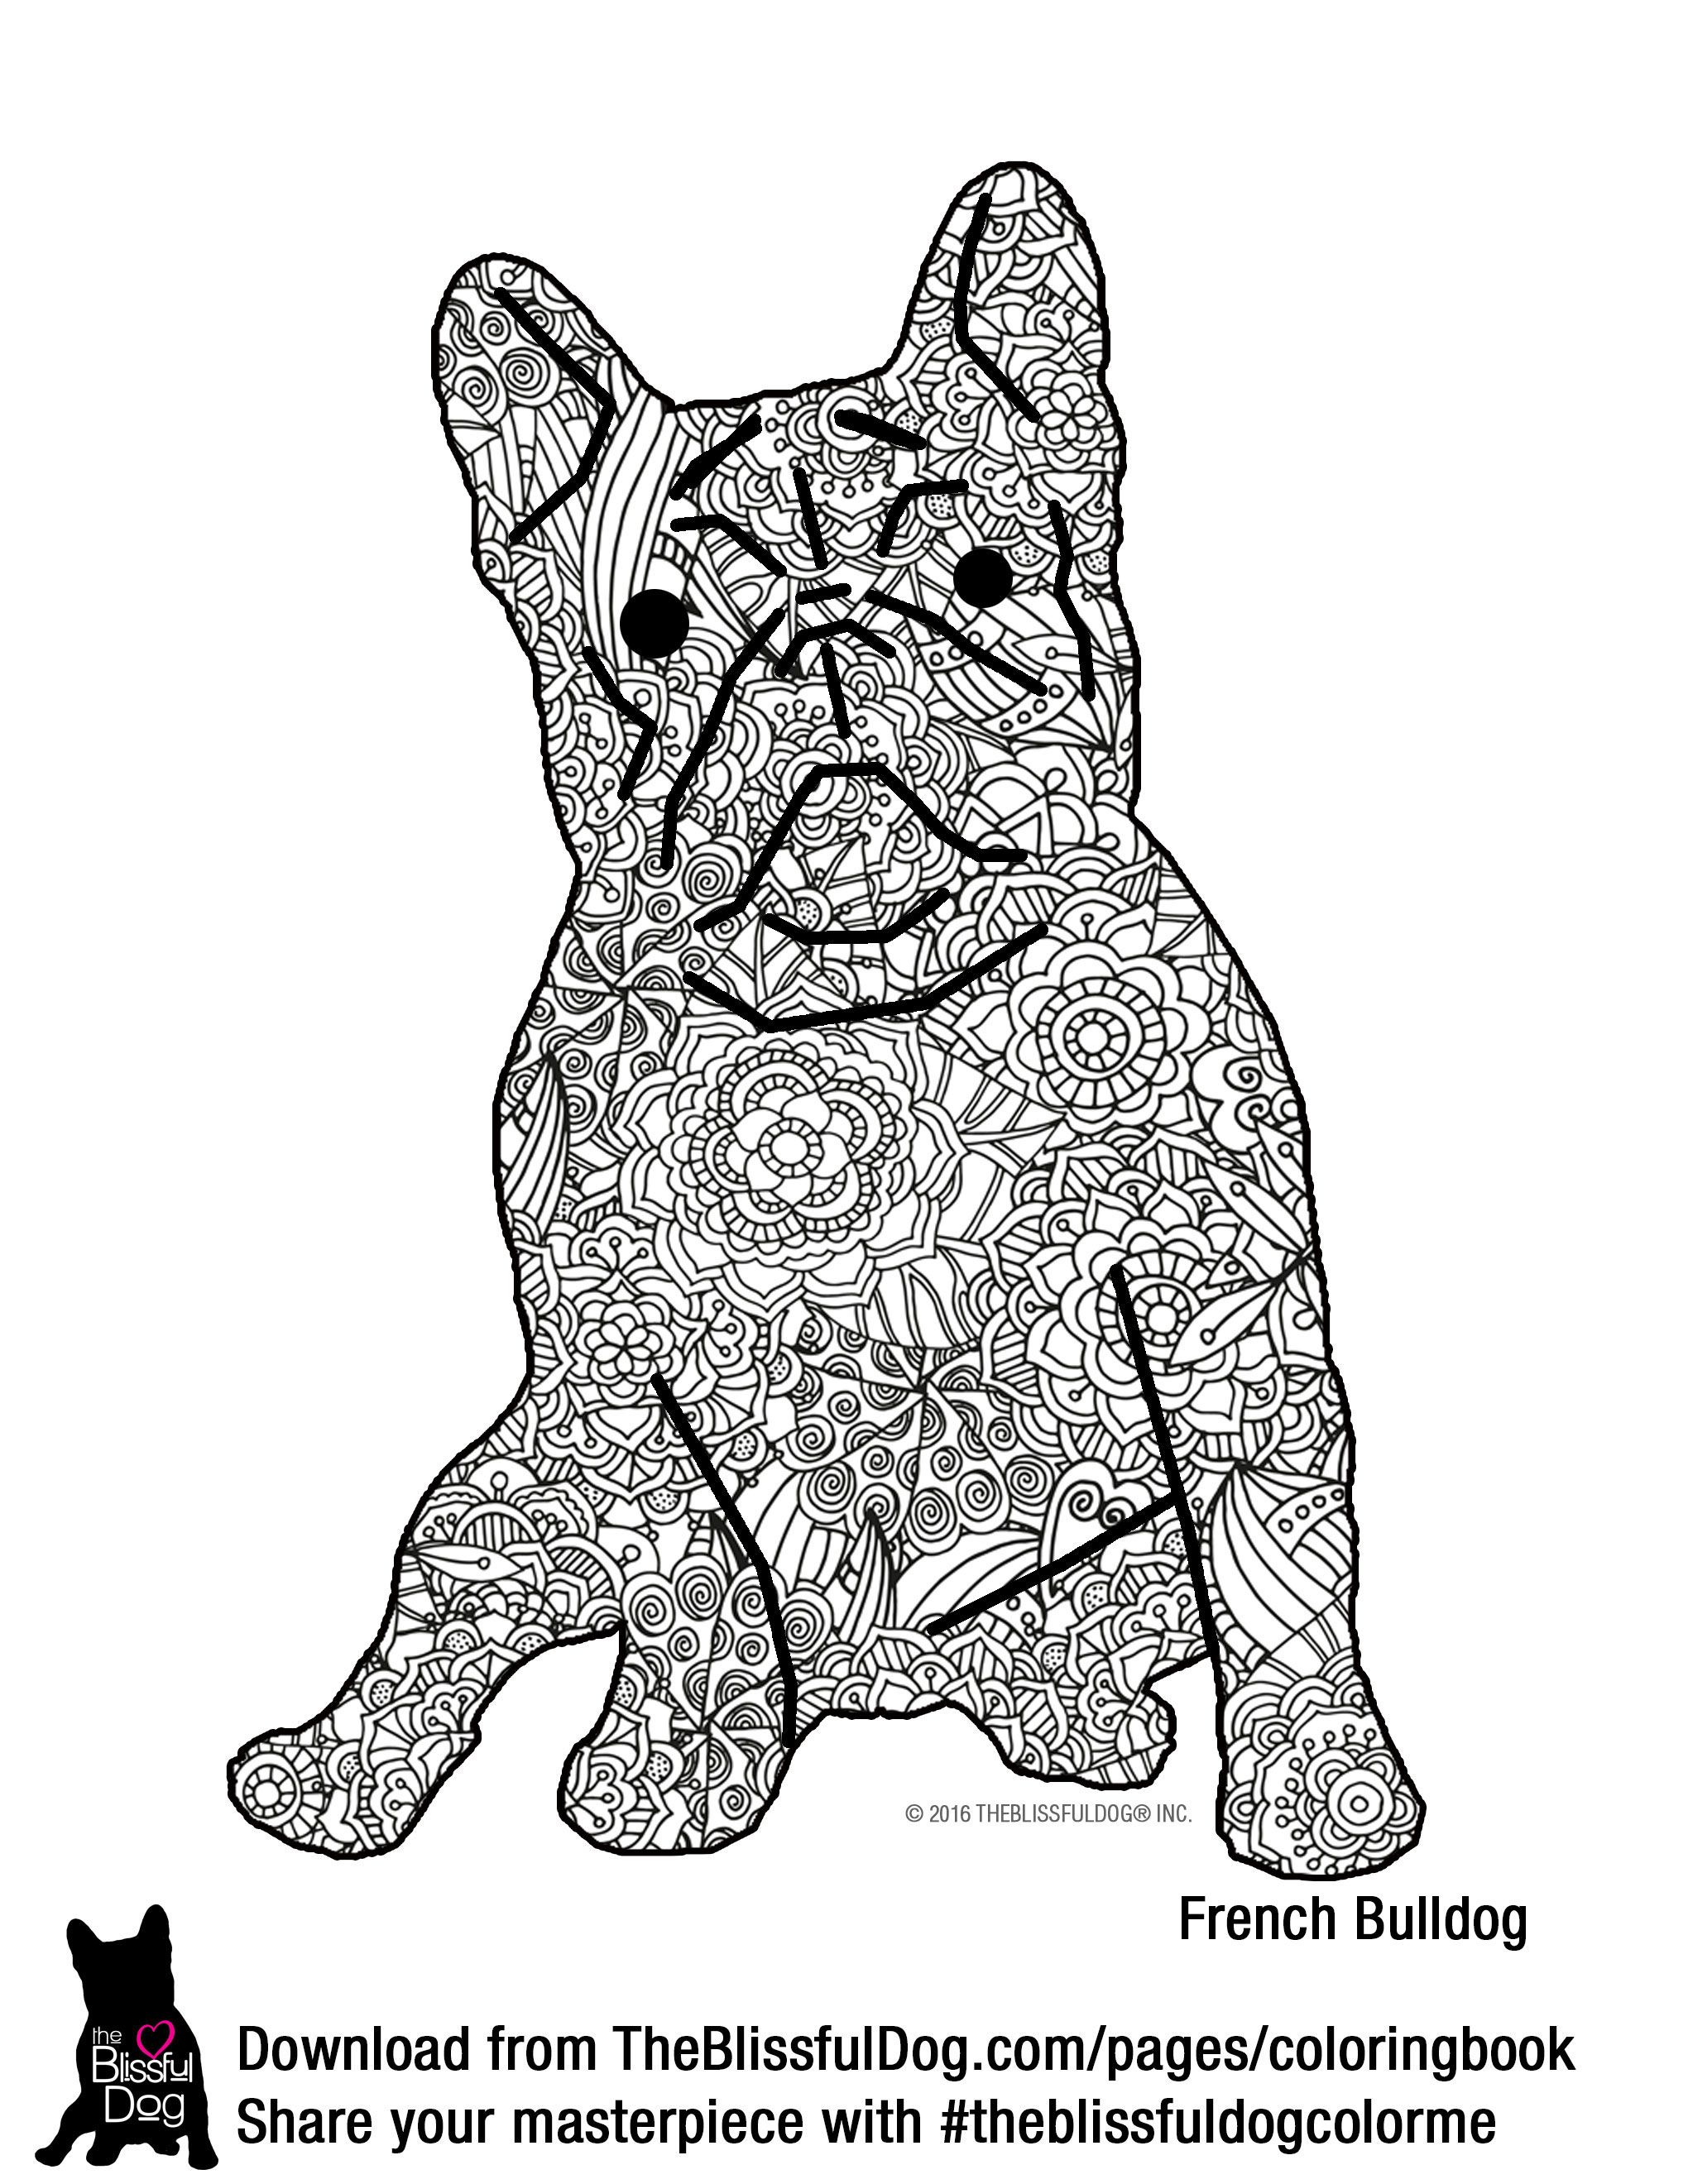 the blissful dog french bulldog coloring page big file so it will